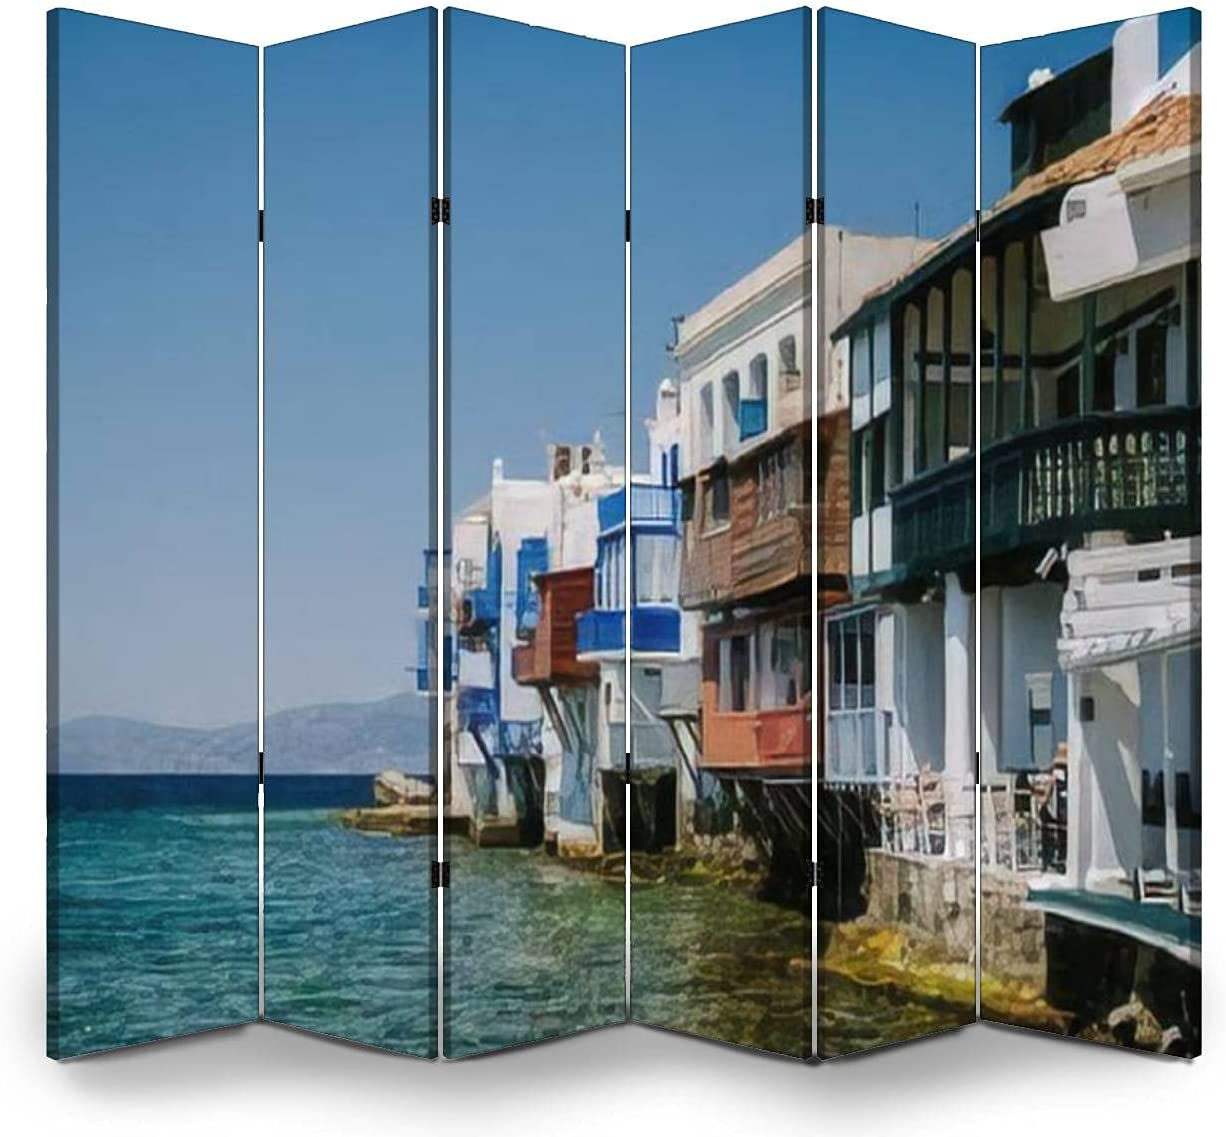 6 Panel Wall Divider Mykonos Greece Colorful Recommendation Super sale Old The of Streets